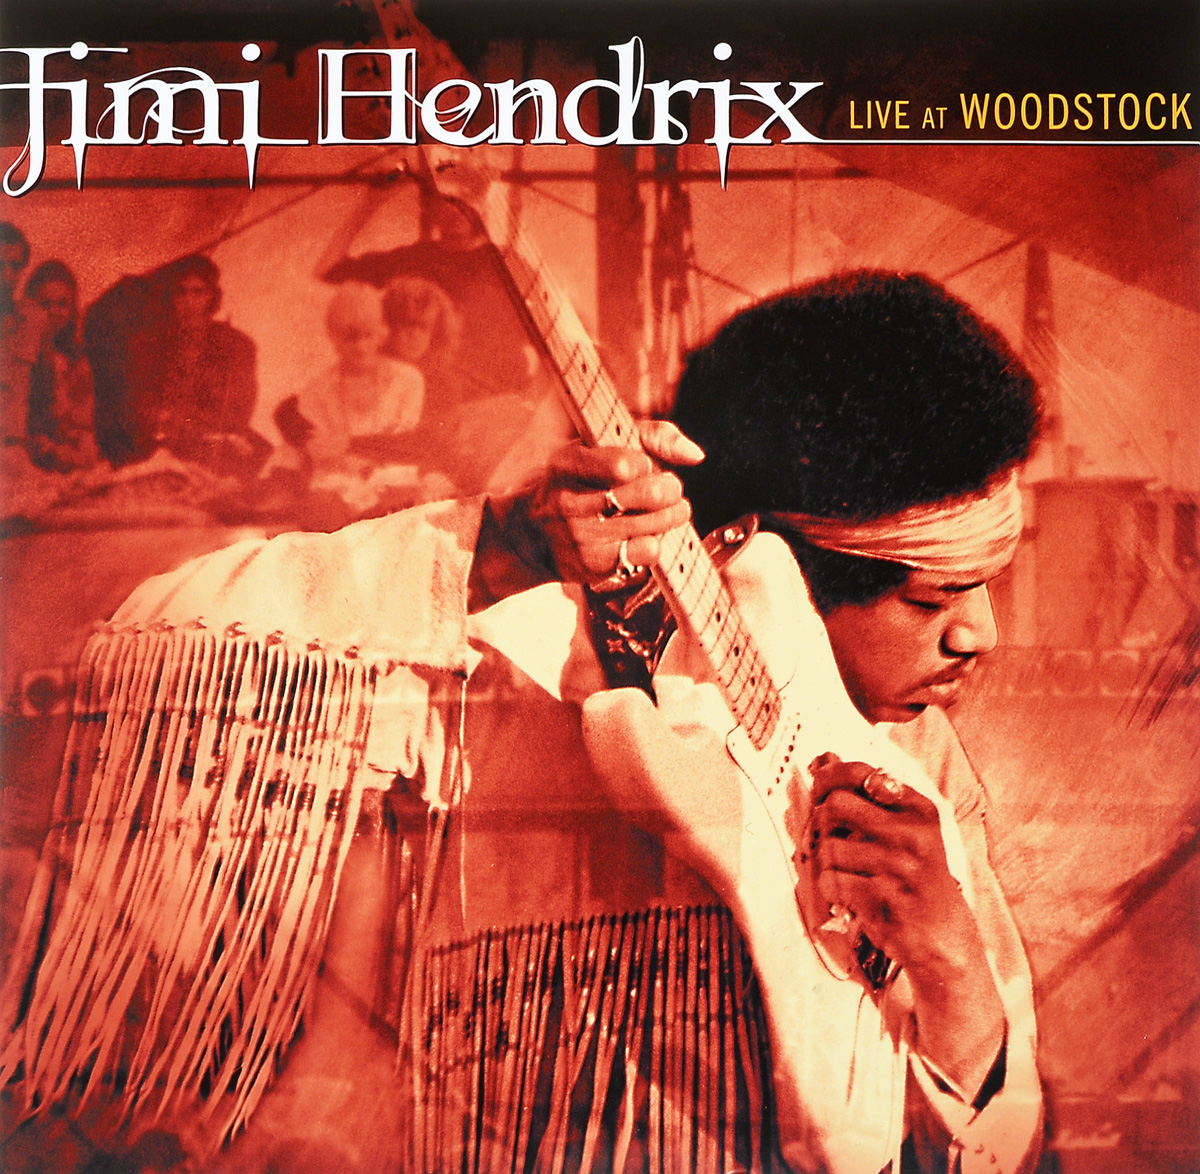 Джими Хендрикс Jimi Hendrix. Live At Woodstock (3 LP) джими хендрикс jimi hendrix the cry of love lp